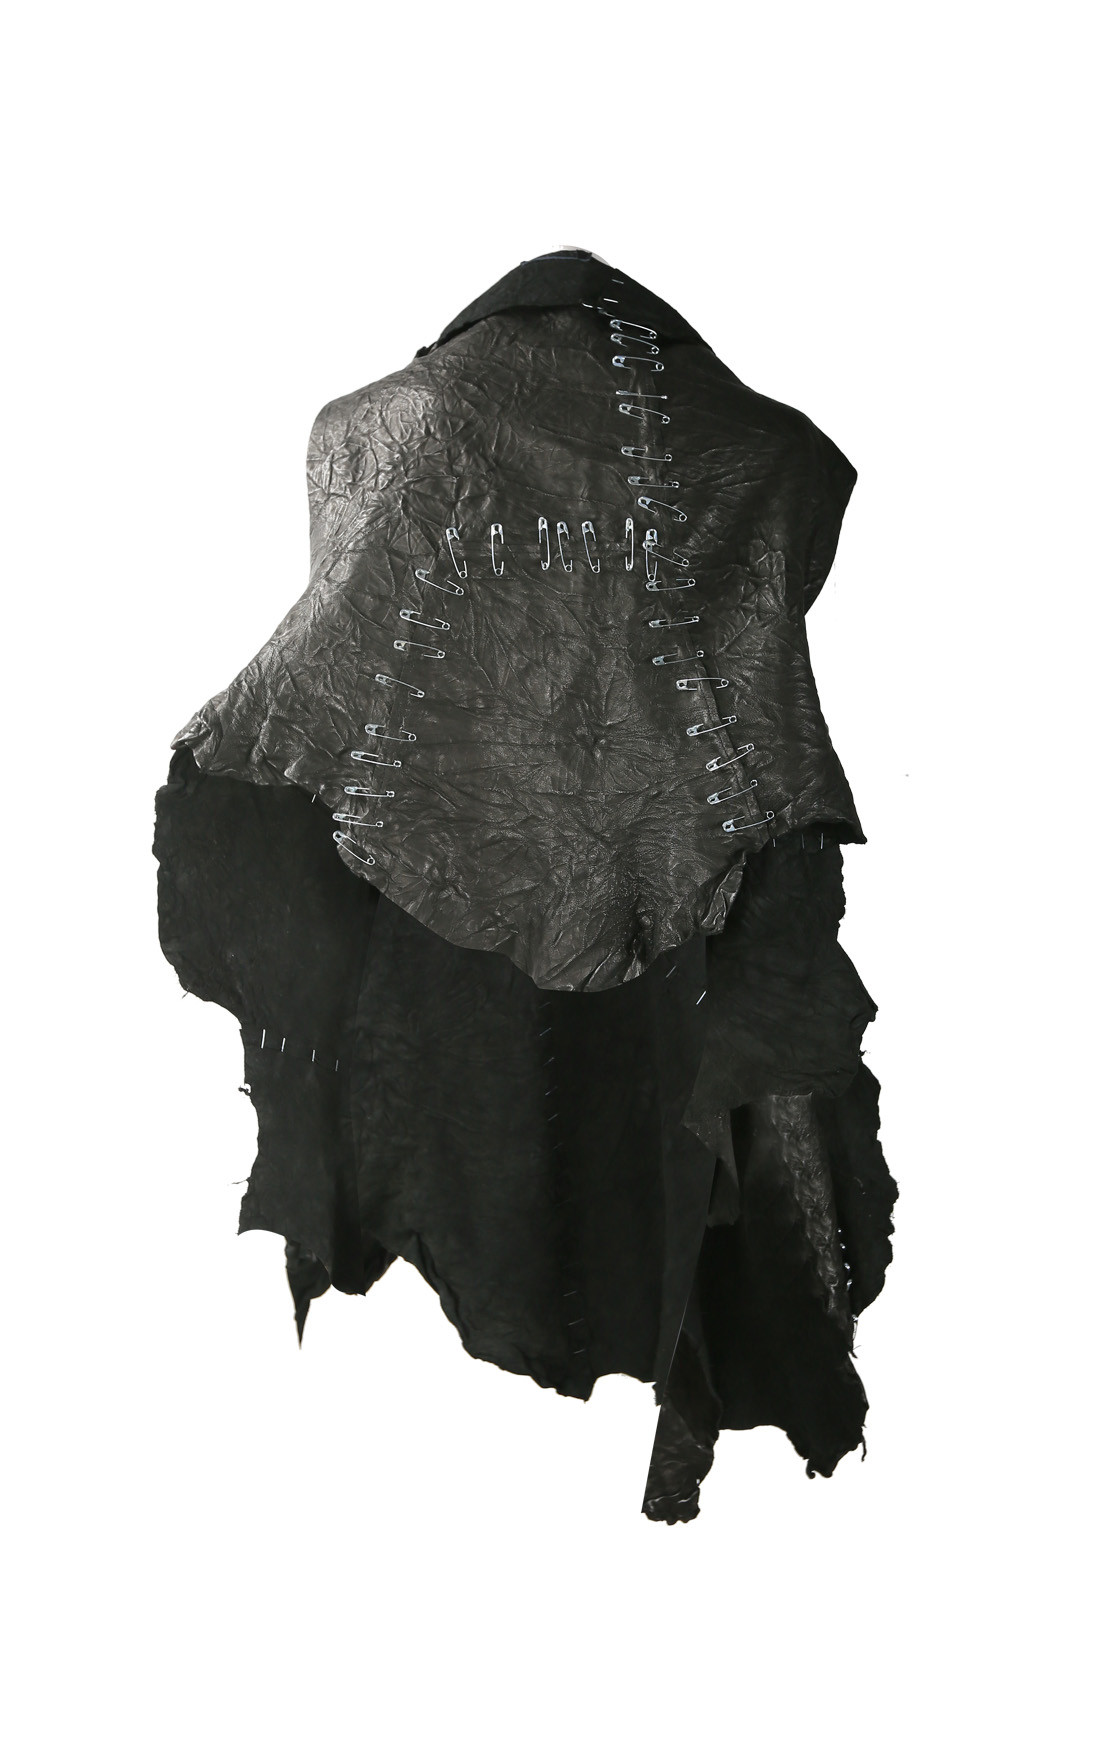 Claudio Cutuli - Leather Stole with Safety Pins On Gilet with Holes (JAGGER)